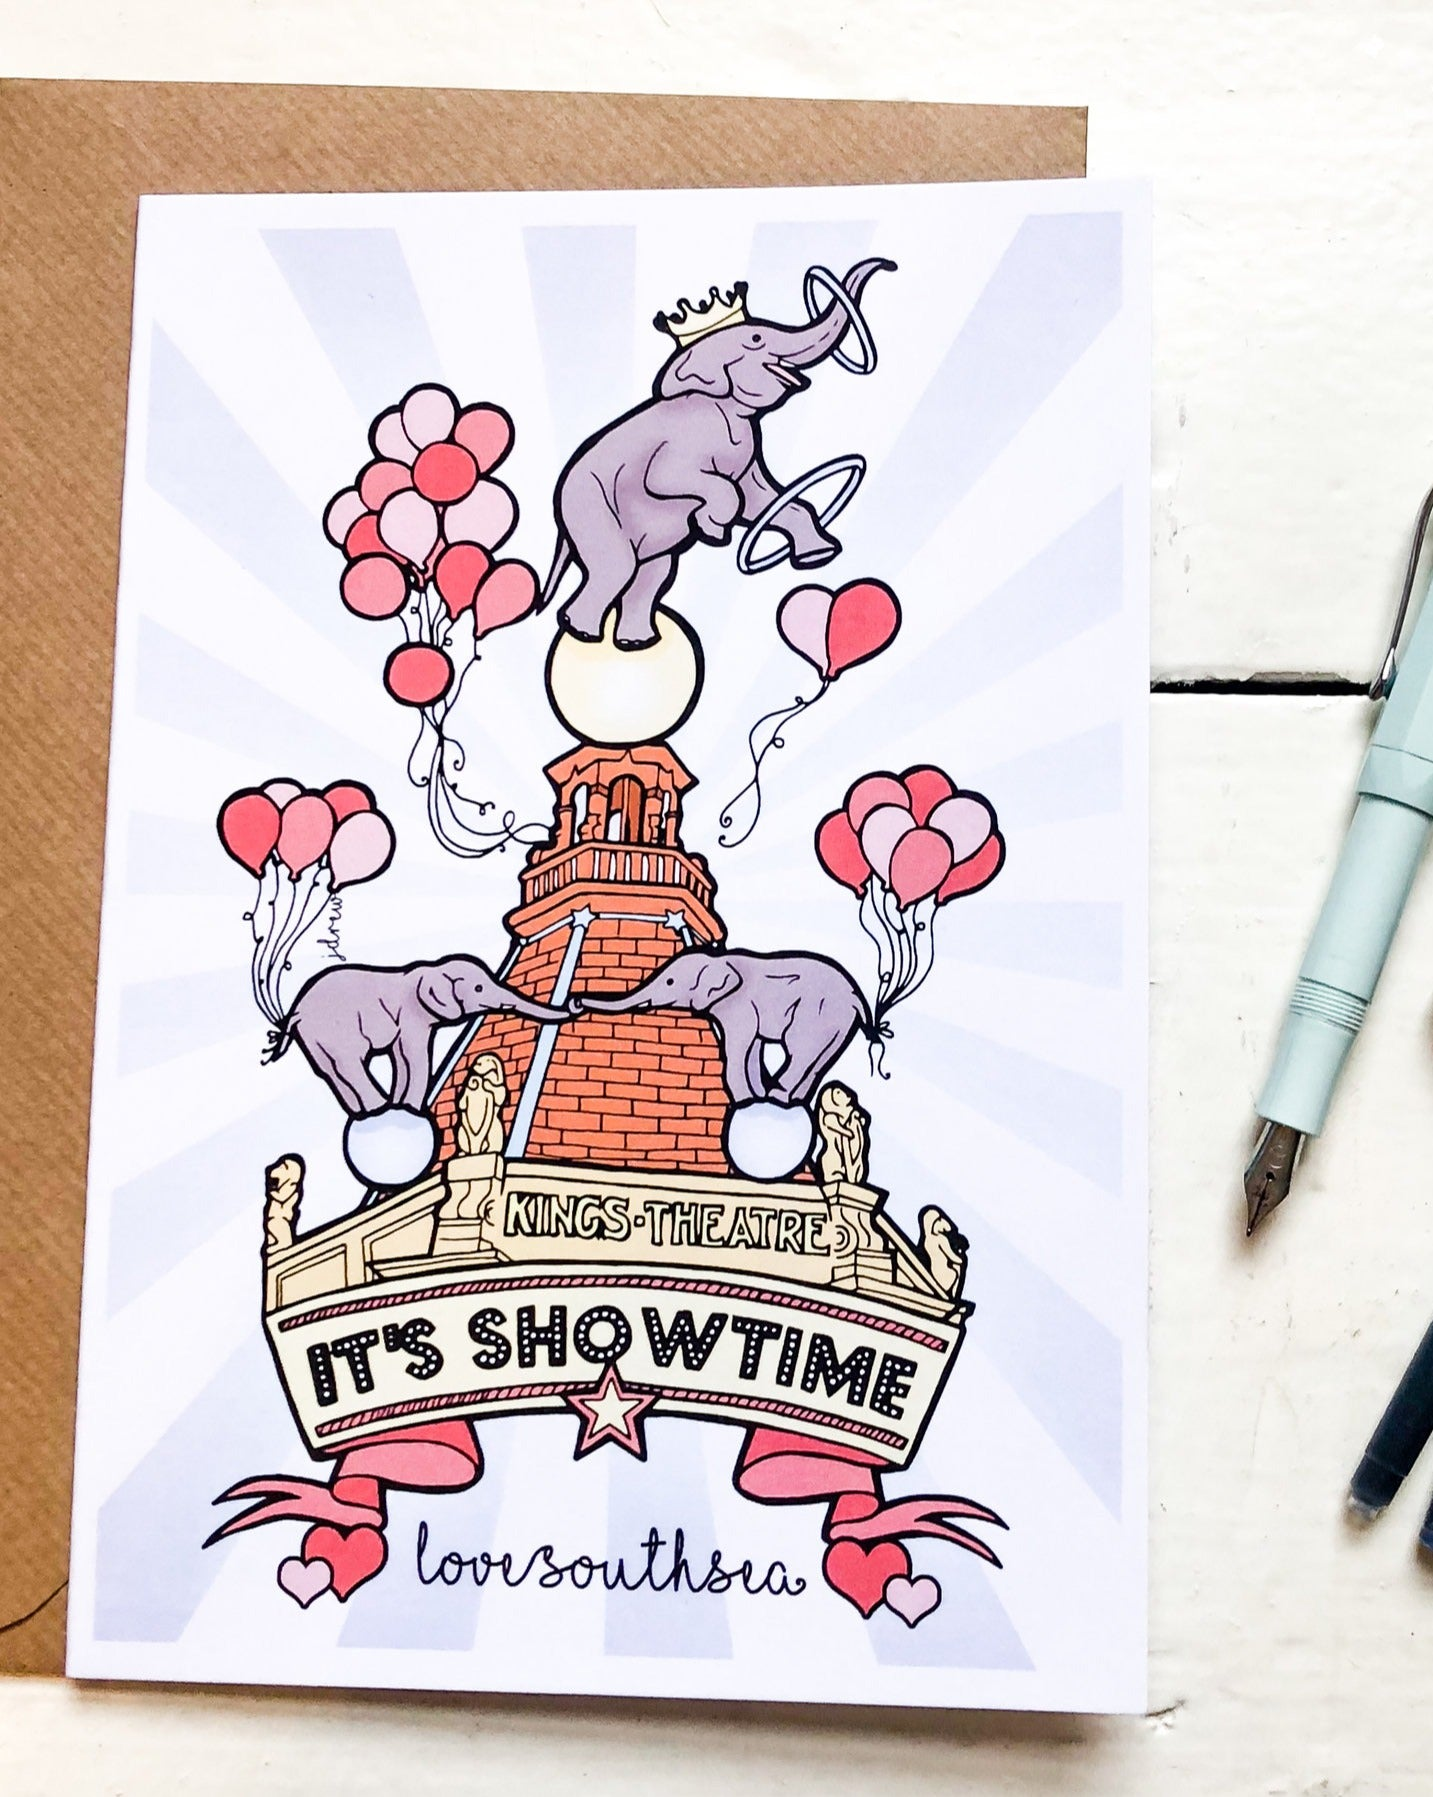 'It's Showtime' at The Kings Theatre Greetings Card